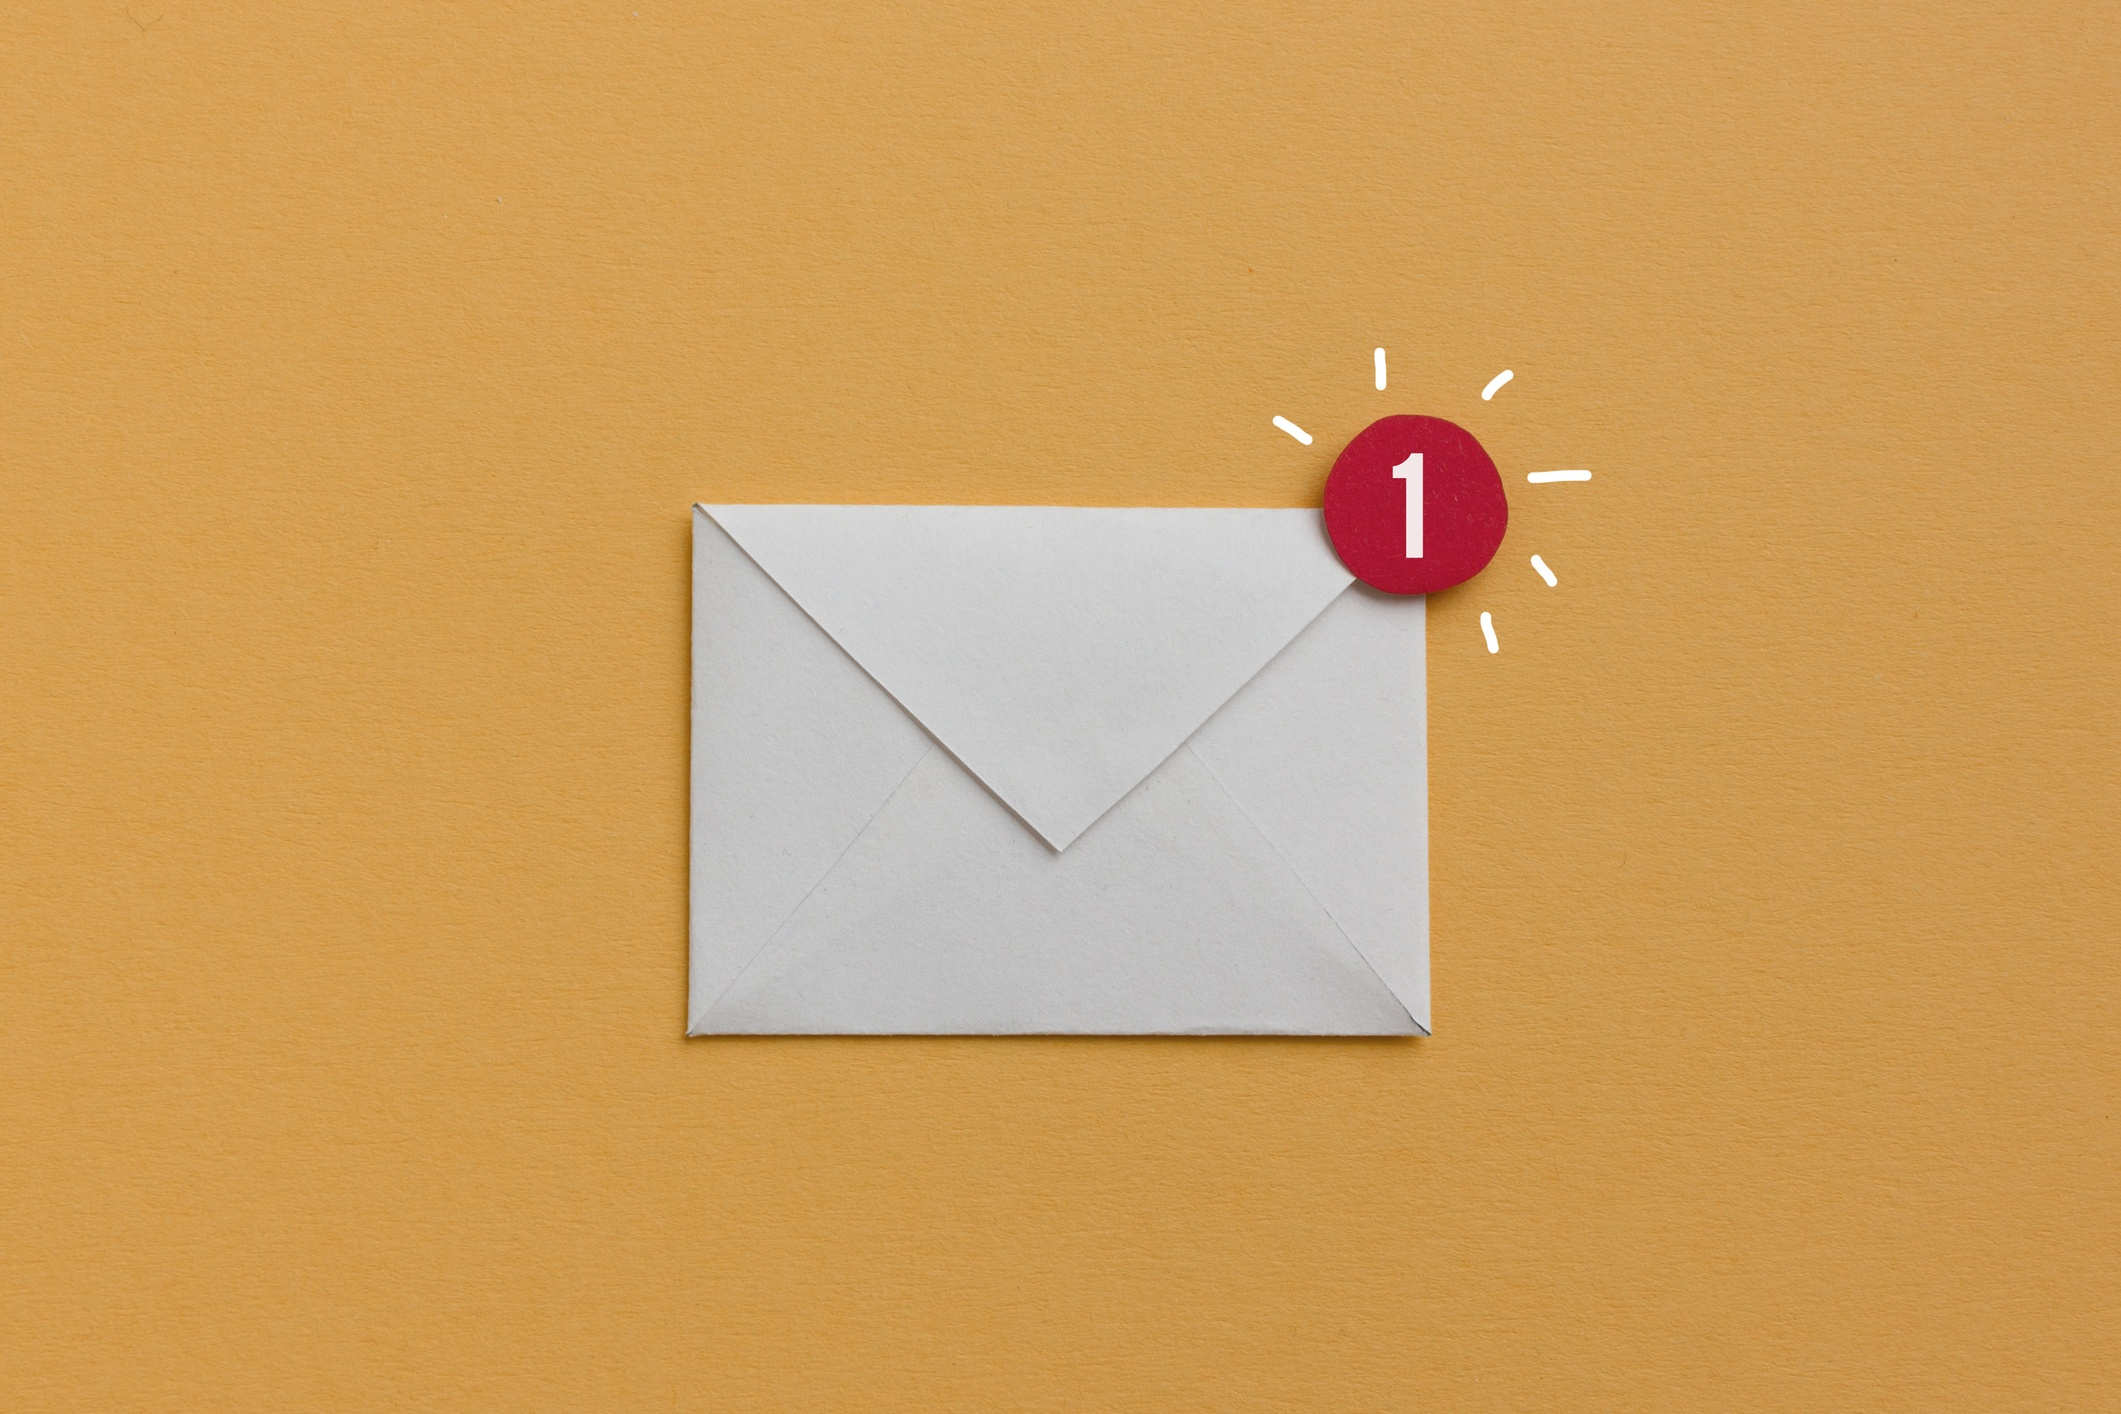 email-is-king-iStock-859676614